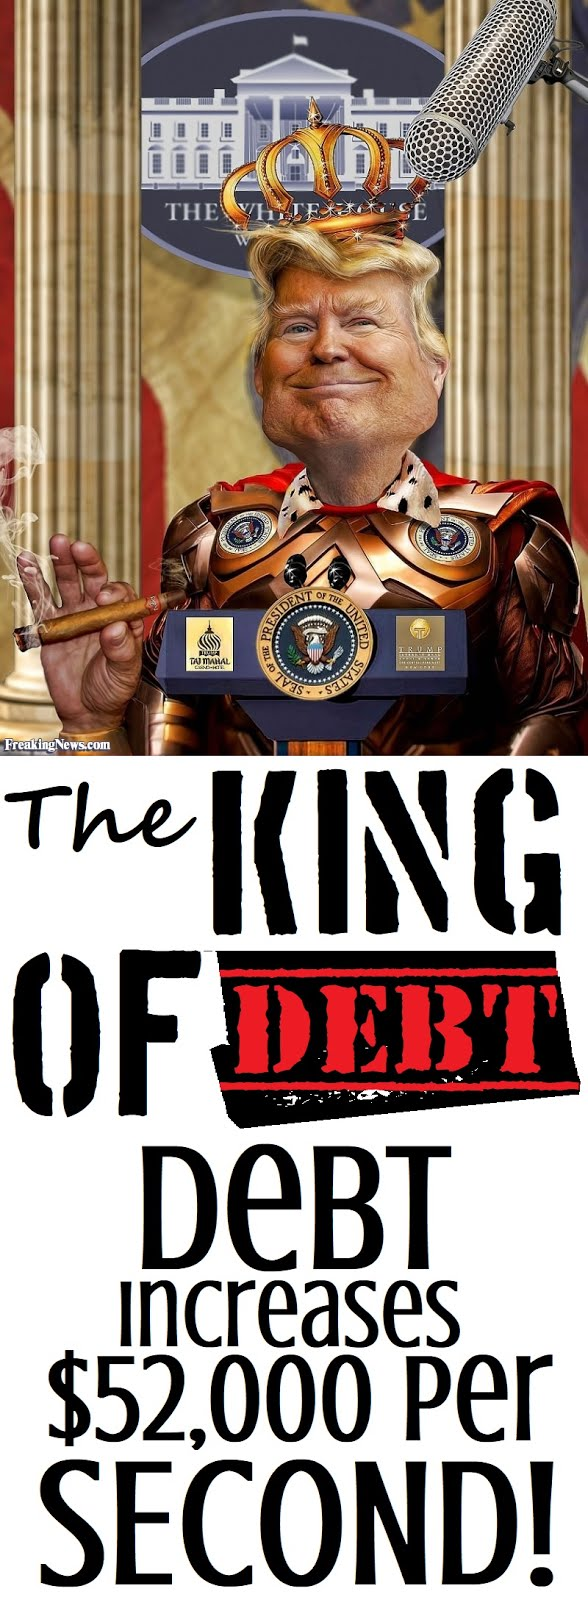 Trump Becomes The King Of Debt!